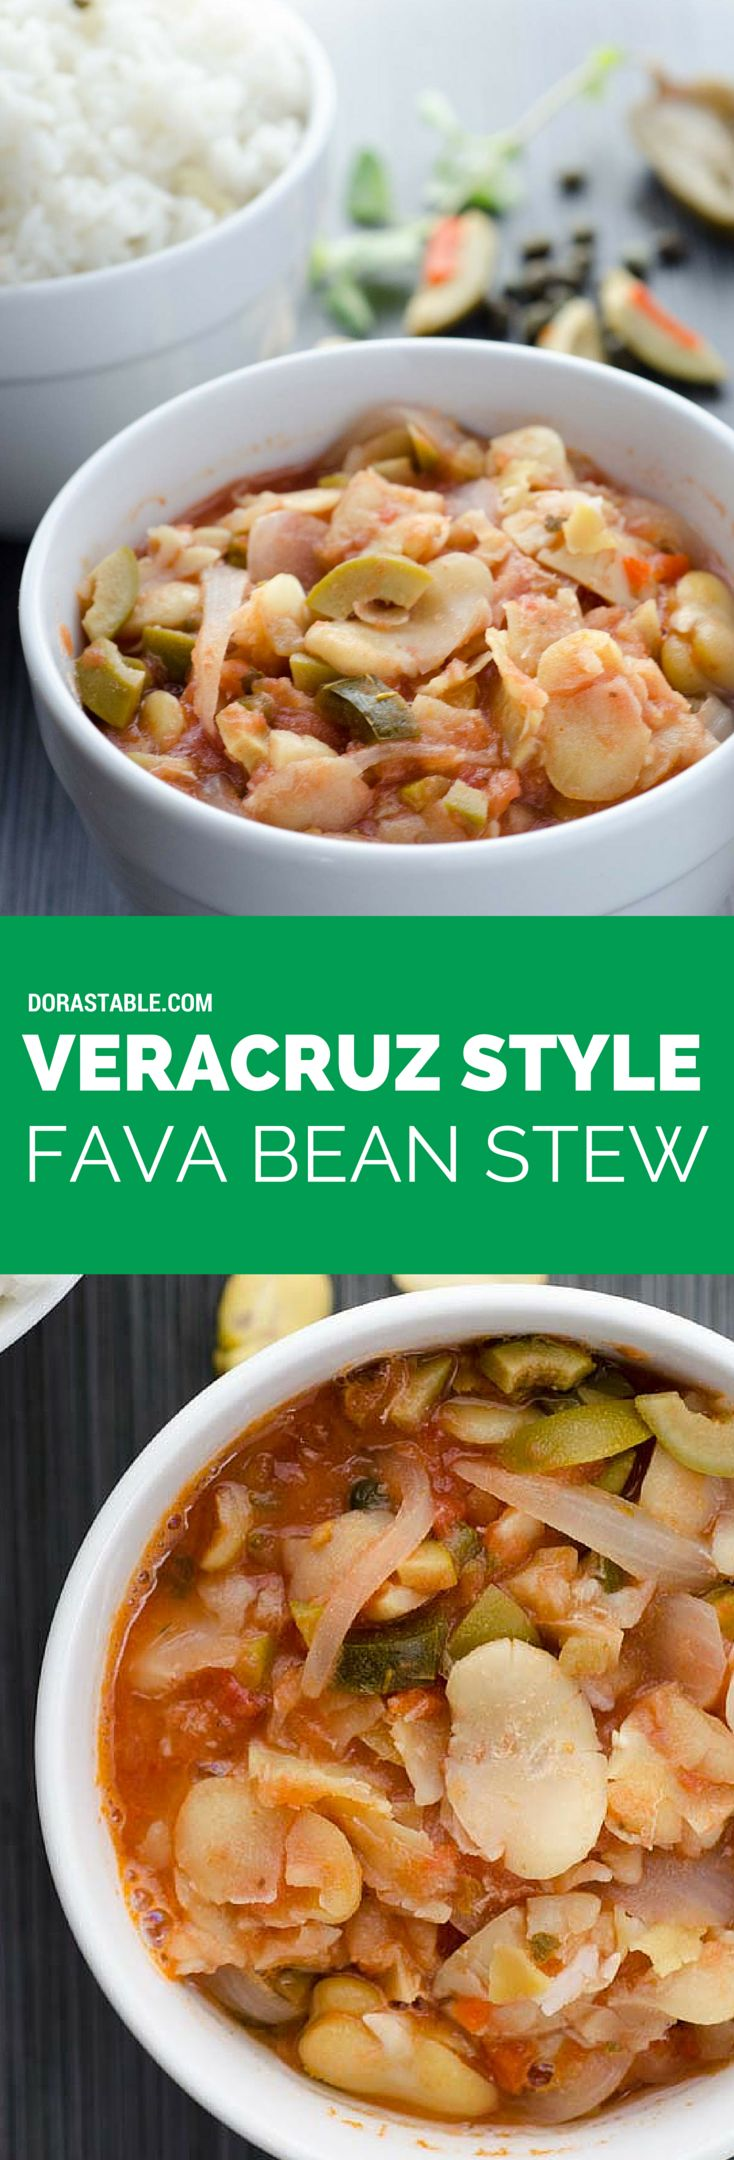 Veracruz-Style Fava Bean Stew, fava beans braised in onion, garlic, tomato, olives, capers, and pickled jalapeños. It is spicy and comforting. Vegan and Gluten-free